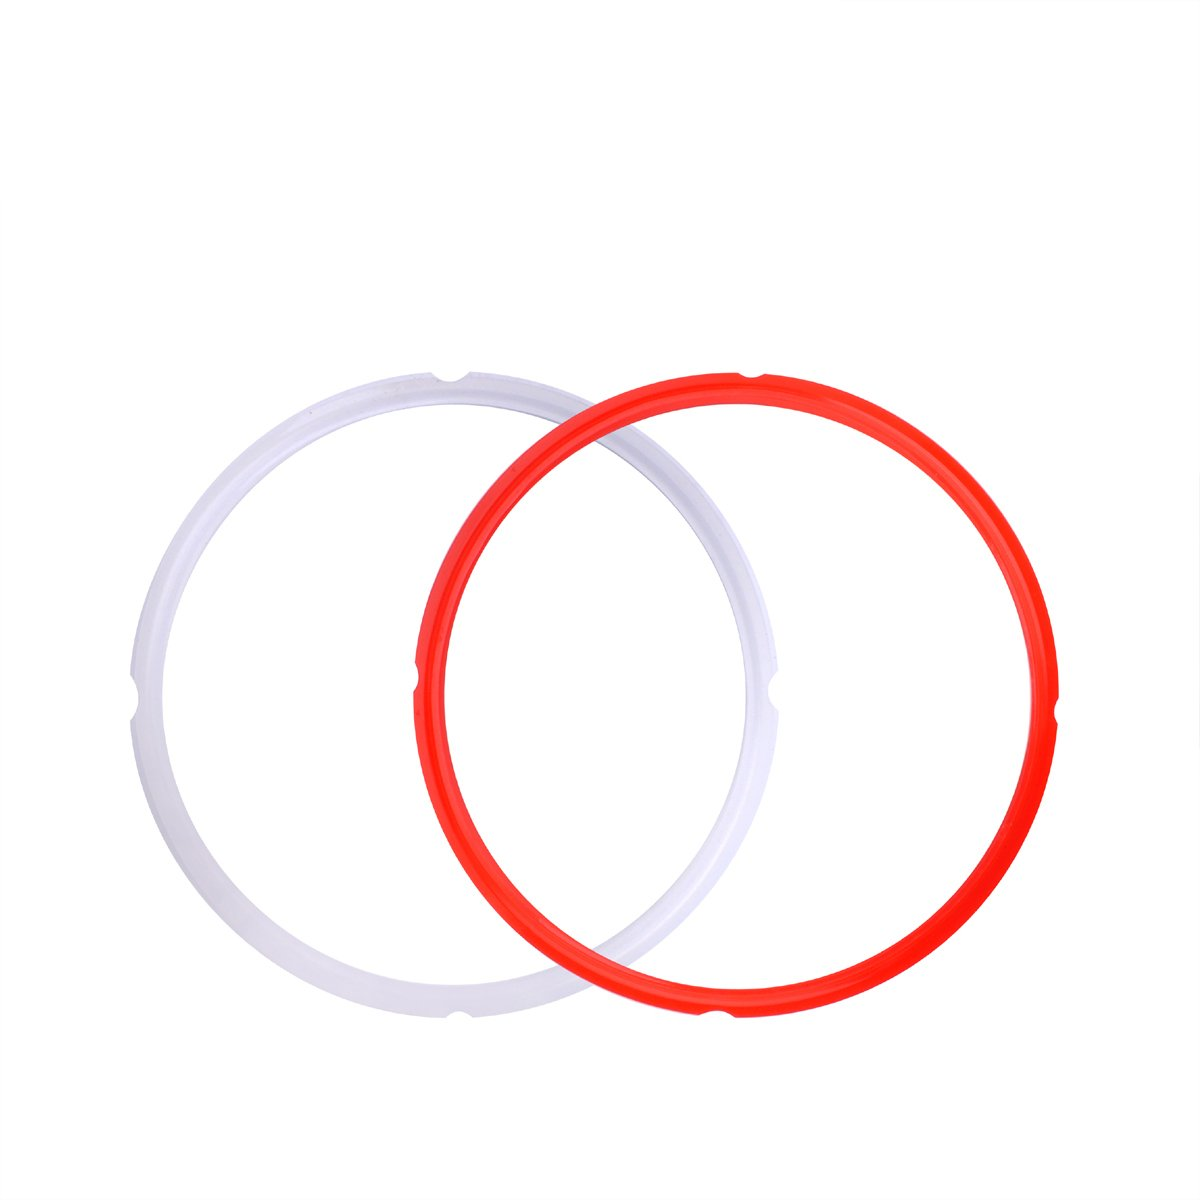 Moveland Silicone Sealing Rings for 5 qt or 6 qt Instant Pot Models, Fits IP-DUO60, IP-LUX60, Smart-60,IP-DUO50, IP-LUX50, IP-CSG60 and IP-CSG50, 2-PACK (Clear & Red)